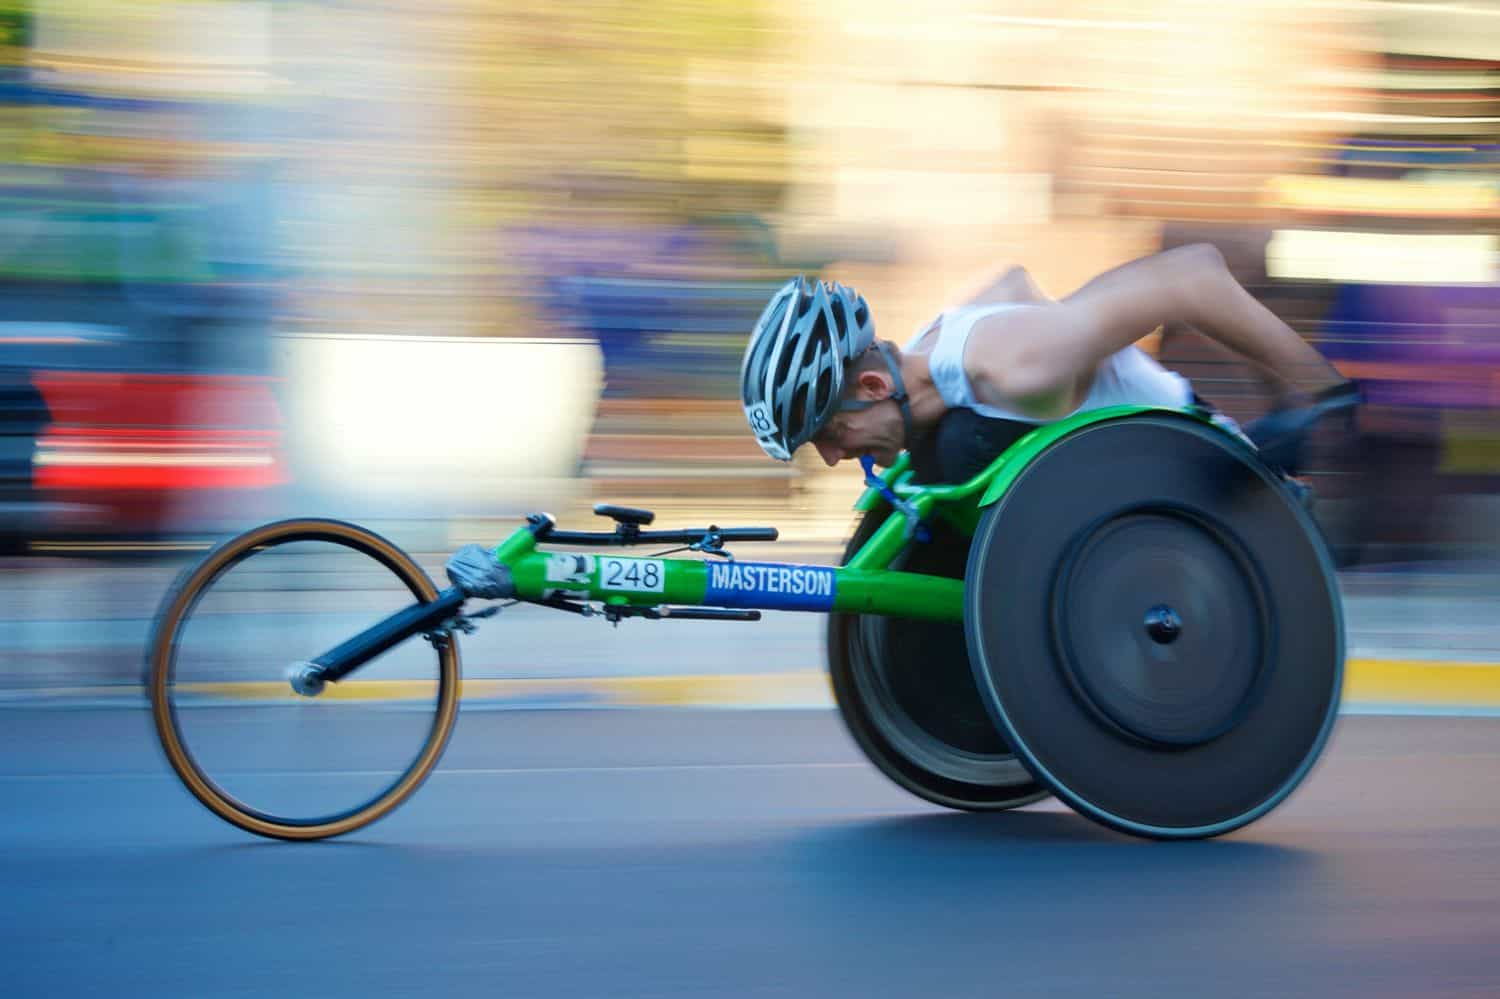 A paraplegic man joining wheelchair racing